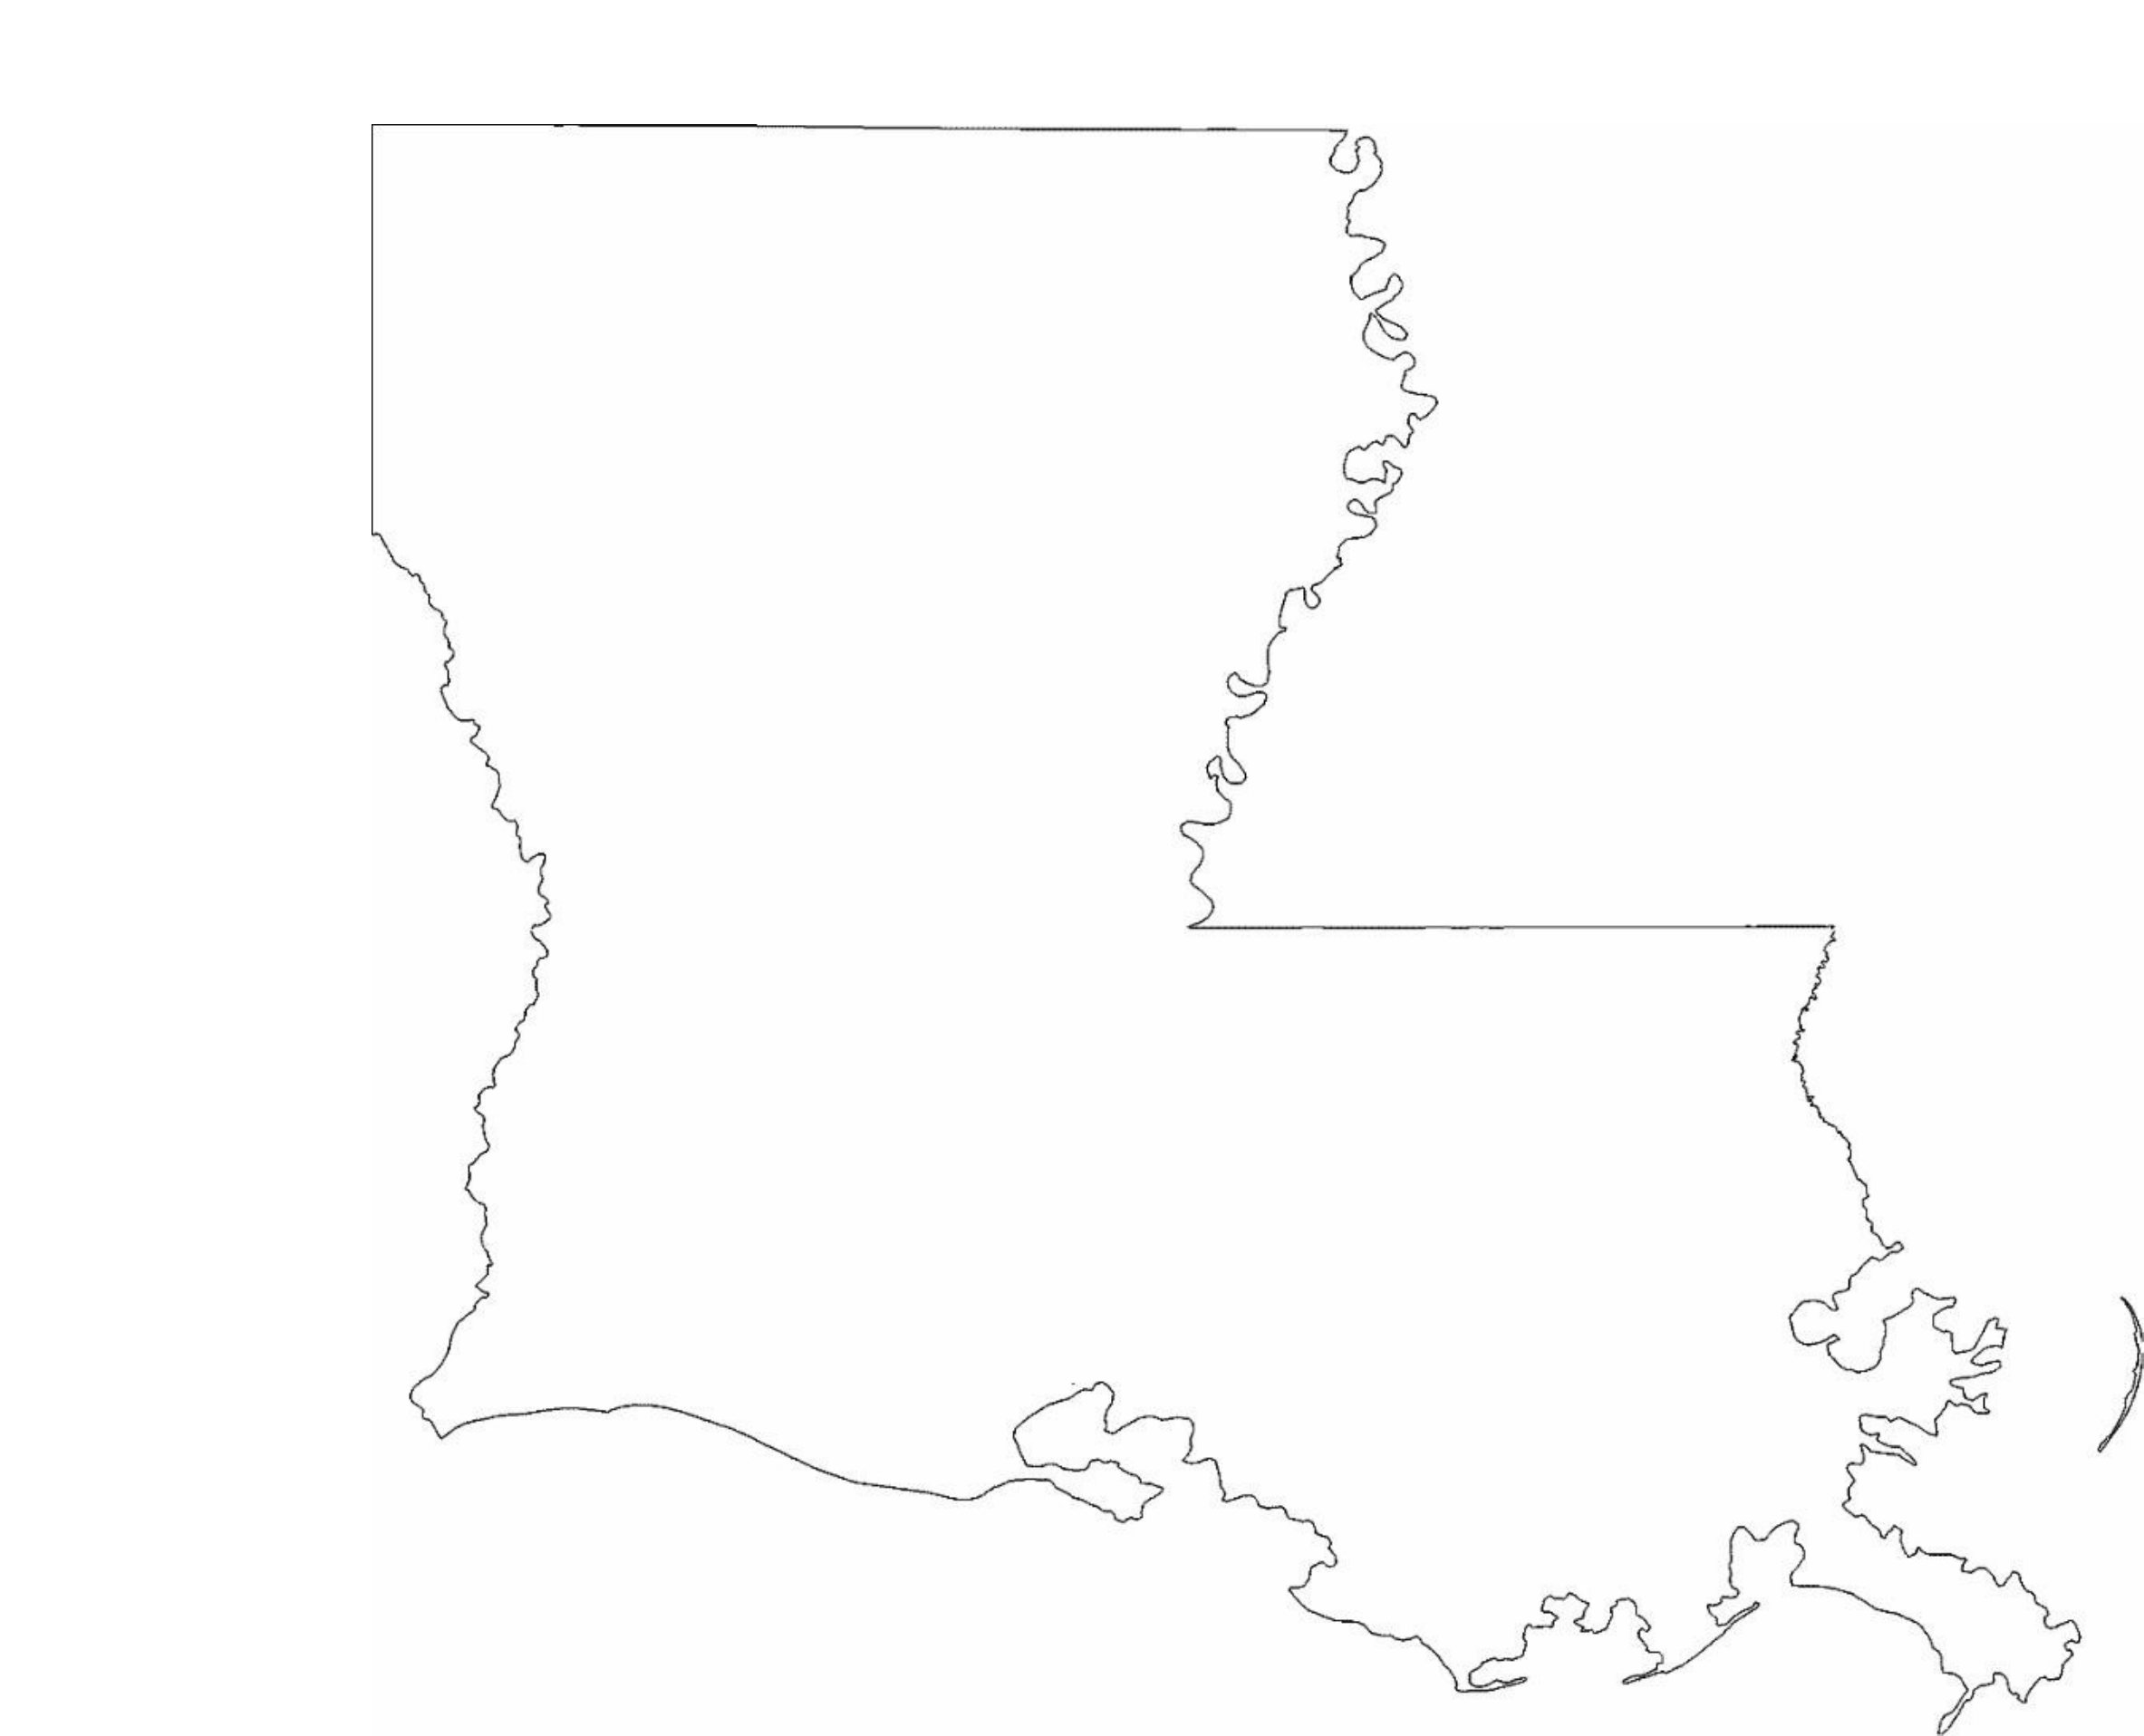 louisiana state outline map free download